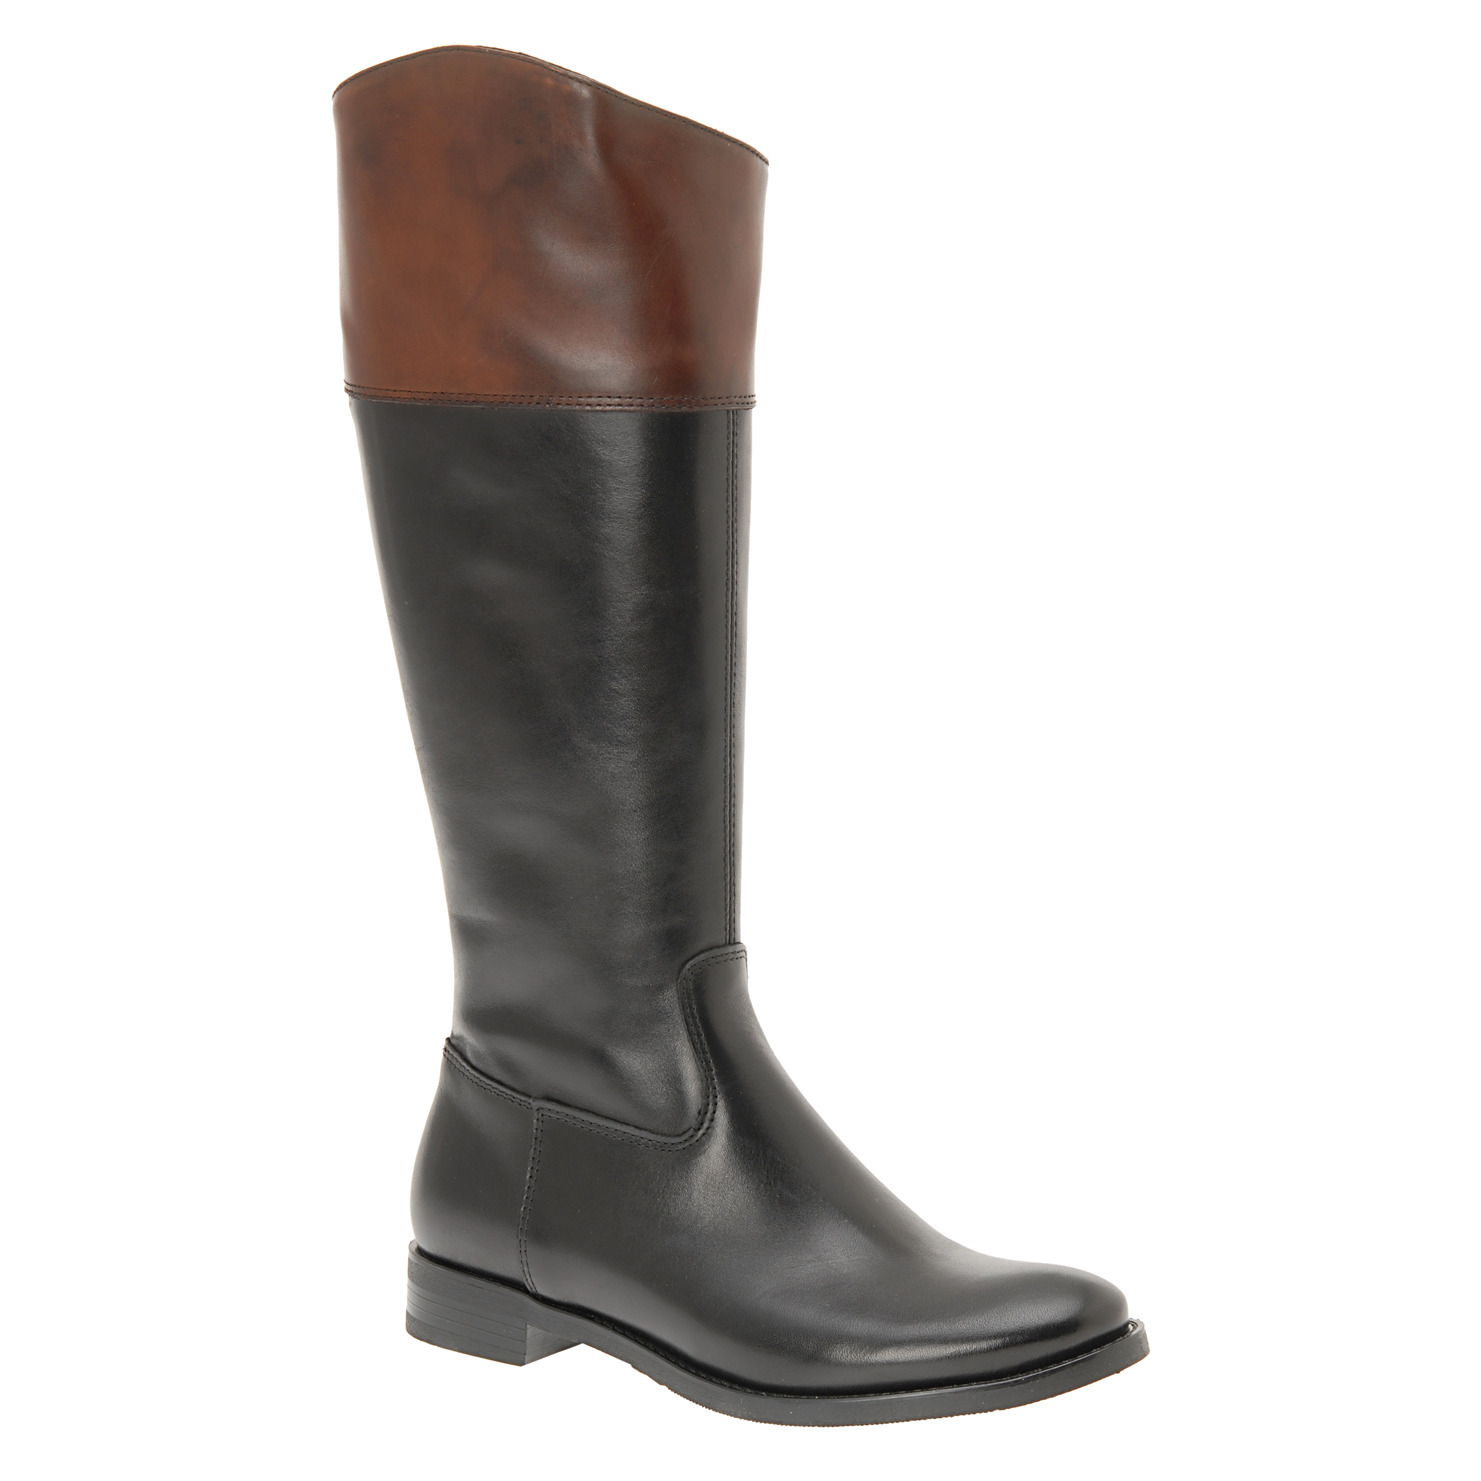 Innovative This Boot Features A Two Tone Outers Of A Light Browns, Blues And Tans With A Contrast Neon Or Gold Elastic Wear With Rolled Up Mom Jeans, Boyfriend Jeans, Skinnies And Even Wear With Skirts, Savannah Is One Of Our Most Versatile Boots,